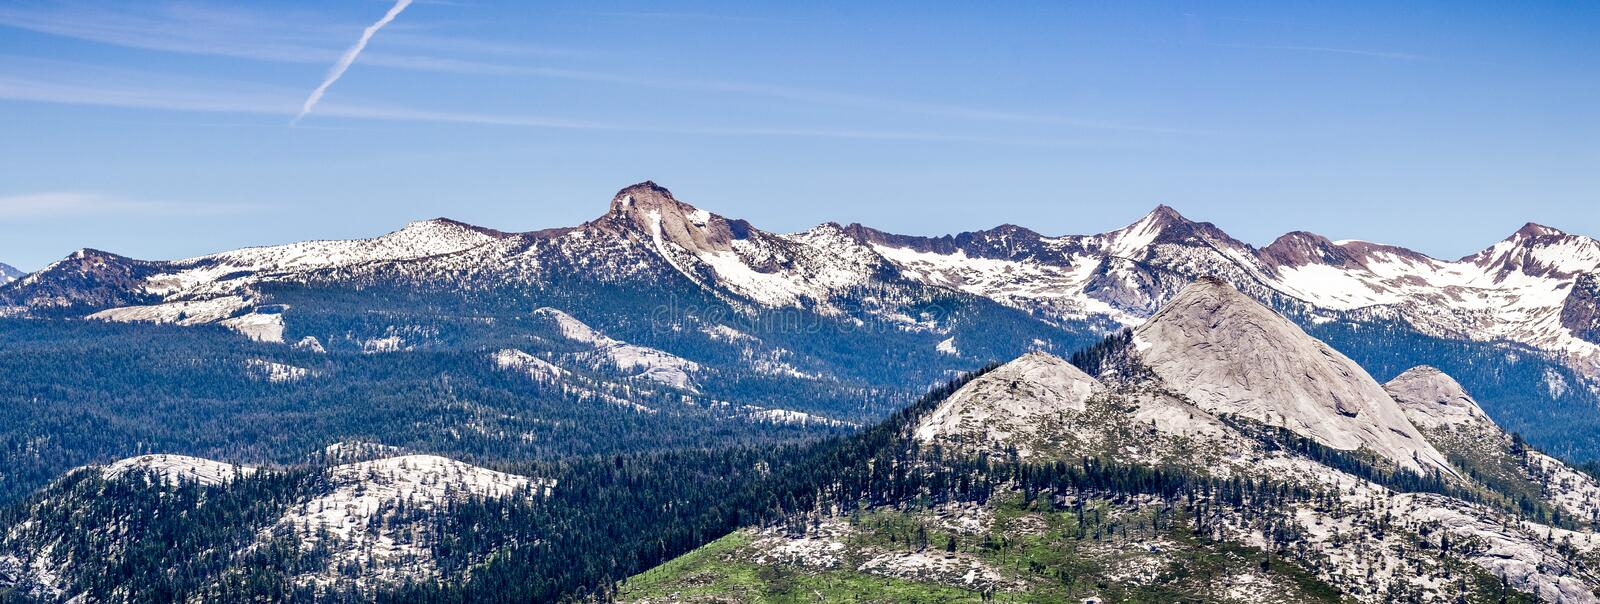 Panoramic view of wilderness areas in Yosemite National Park with mountain peaks covered in snow; Sierra Nevada mountains,. California royalty free stock image